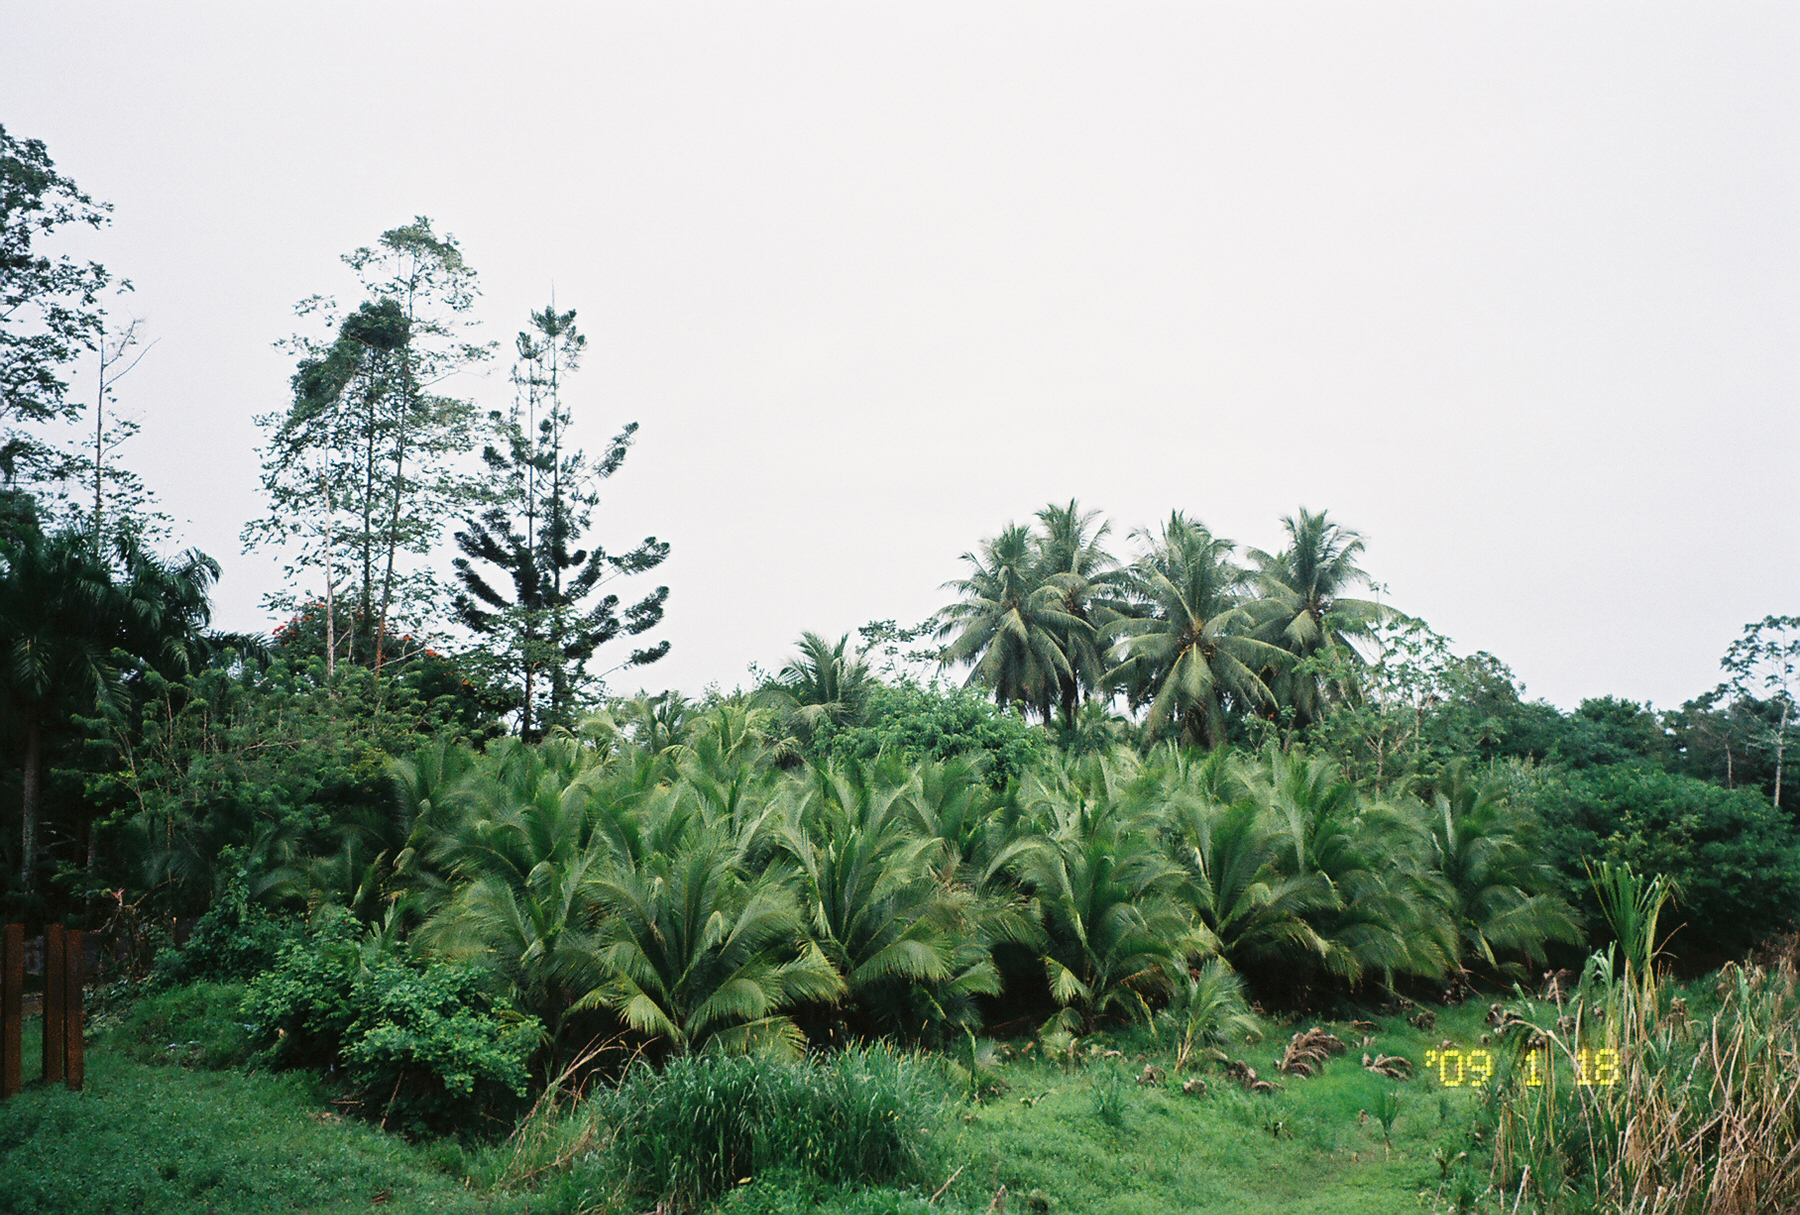 A grove of coconut palms and royal palms on the Costa Rican border